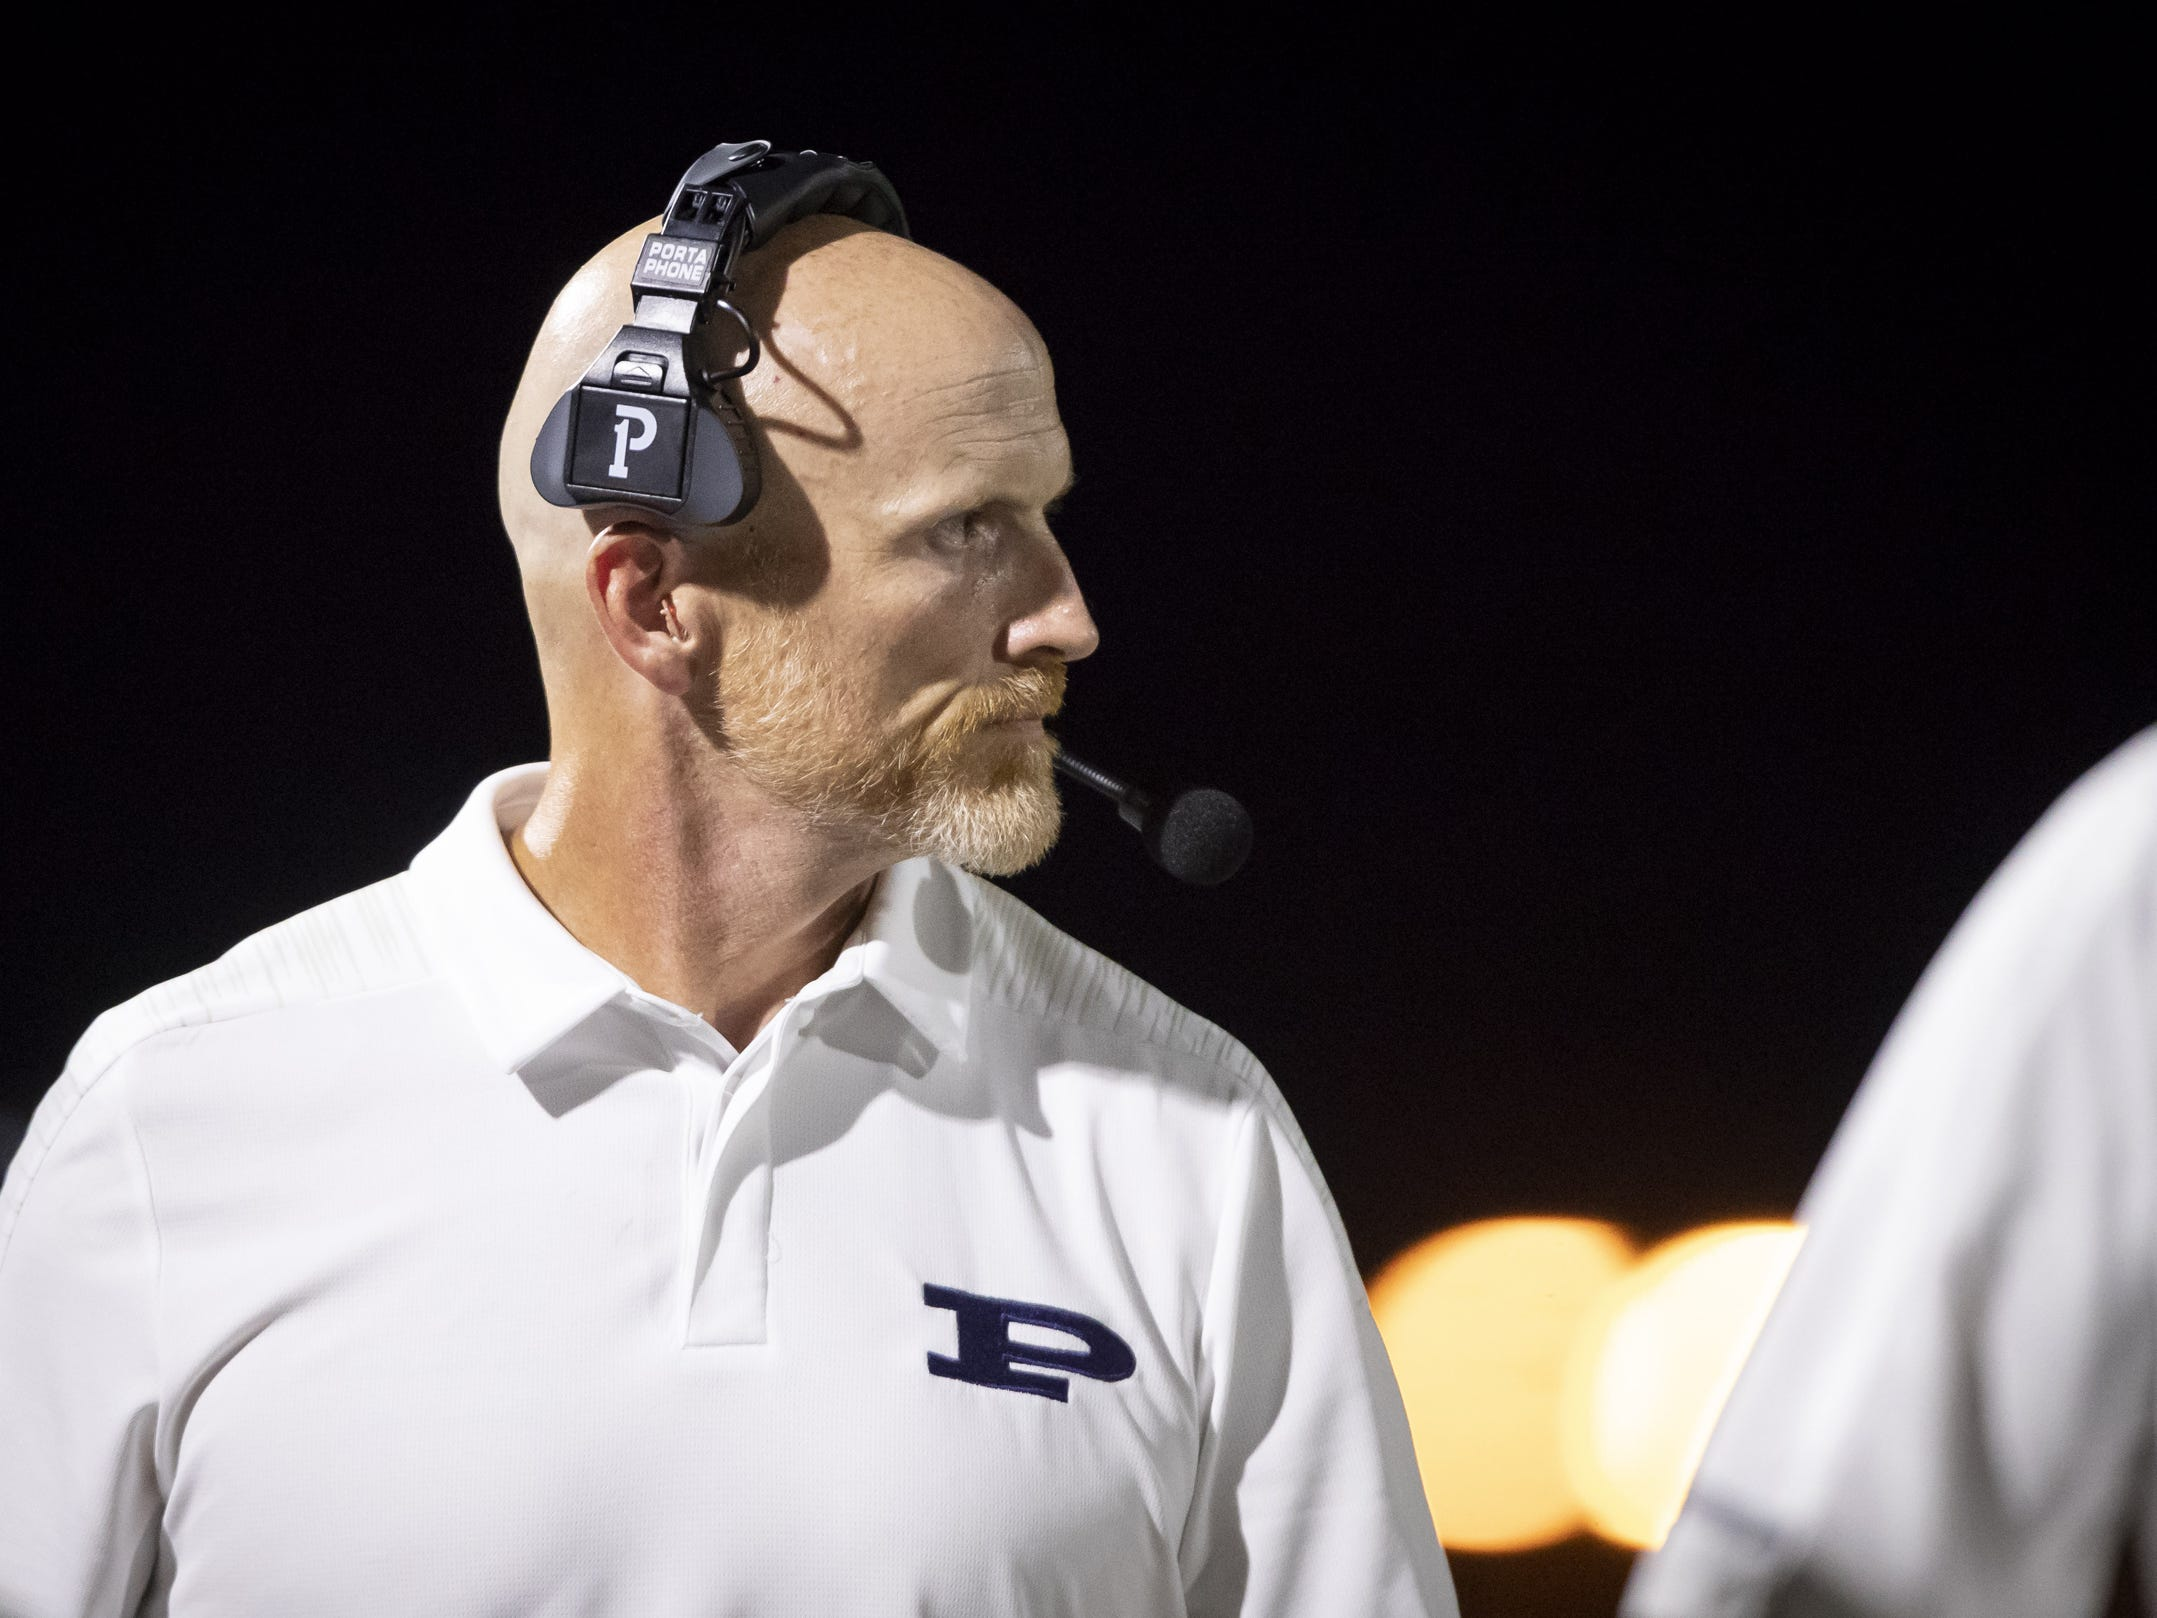 Head coach Dana Zupke of the Pinnacle Pioneers looks on during the game against the Perry Pumas at Pinnacle High School on Friday, August 17, 2018 in Phoenix, Arizona.